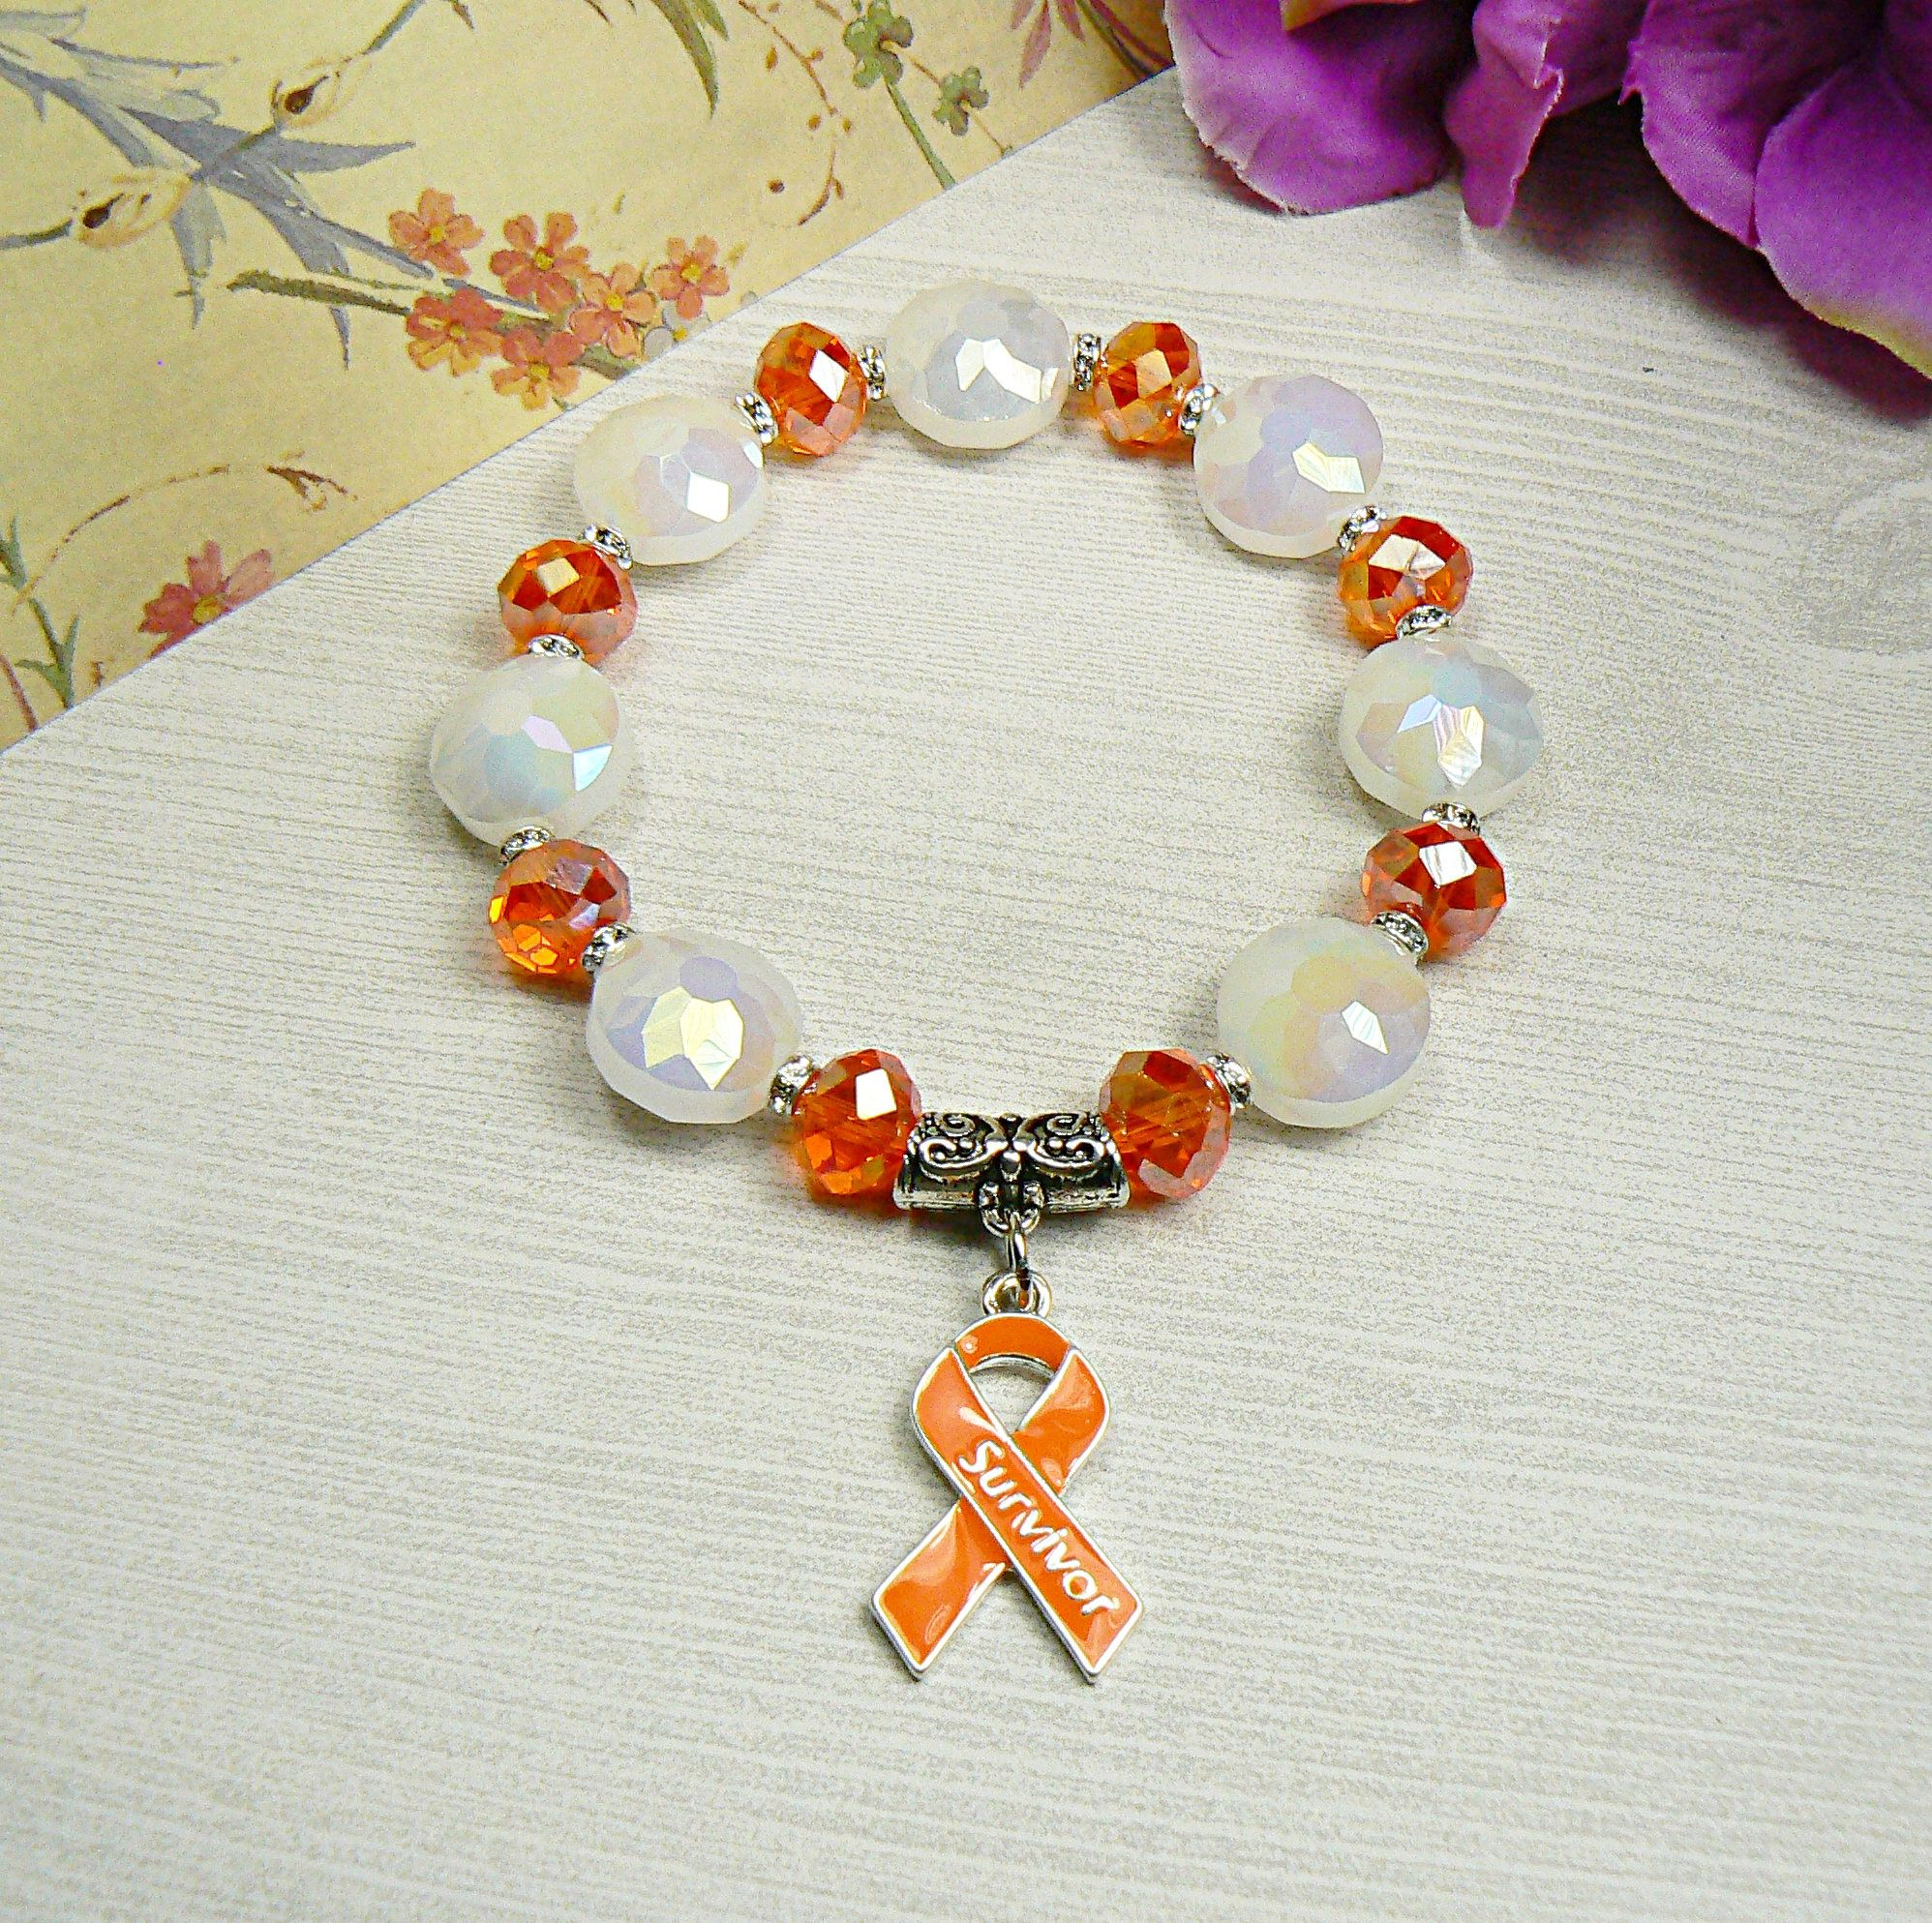 rubber wristband uk for sale click leukemia awareness gold courage splendid jewelry anchor beautifully diabetes dnr with inspiration orange leather fantastical bracelets bracelet faith design hospital meaning idea one hope